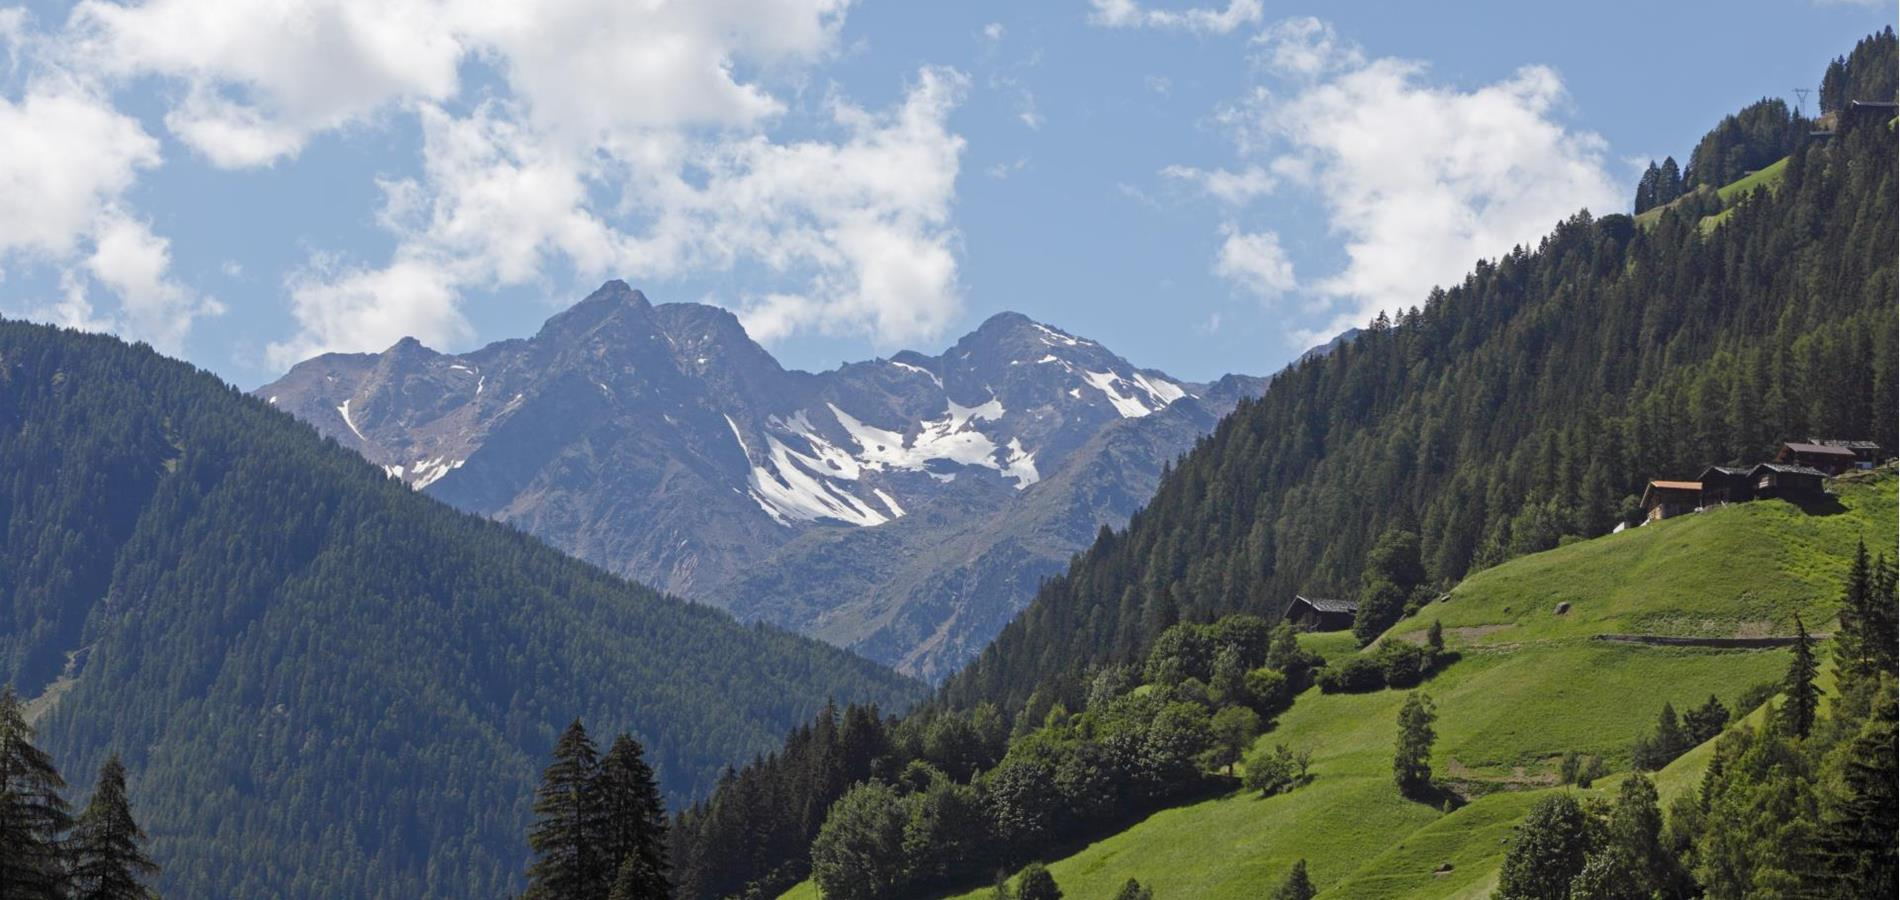 Webcams in of the Ultental Valley